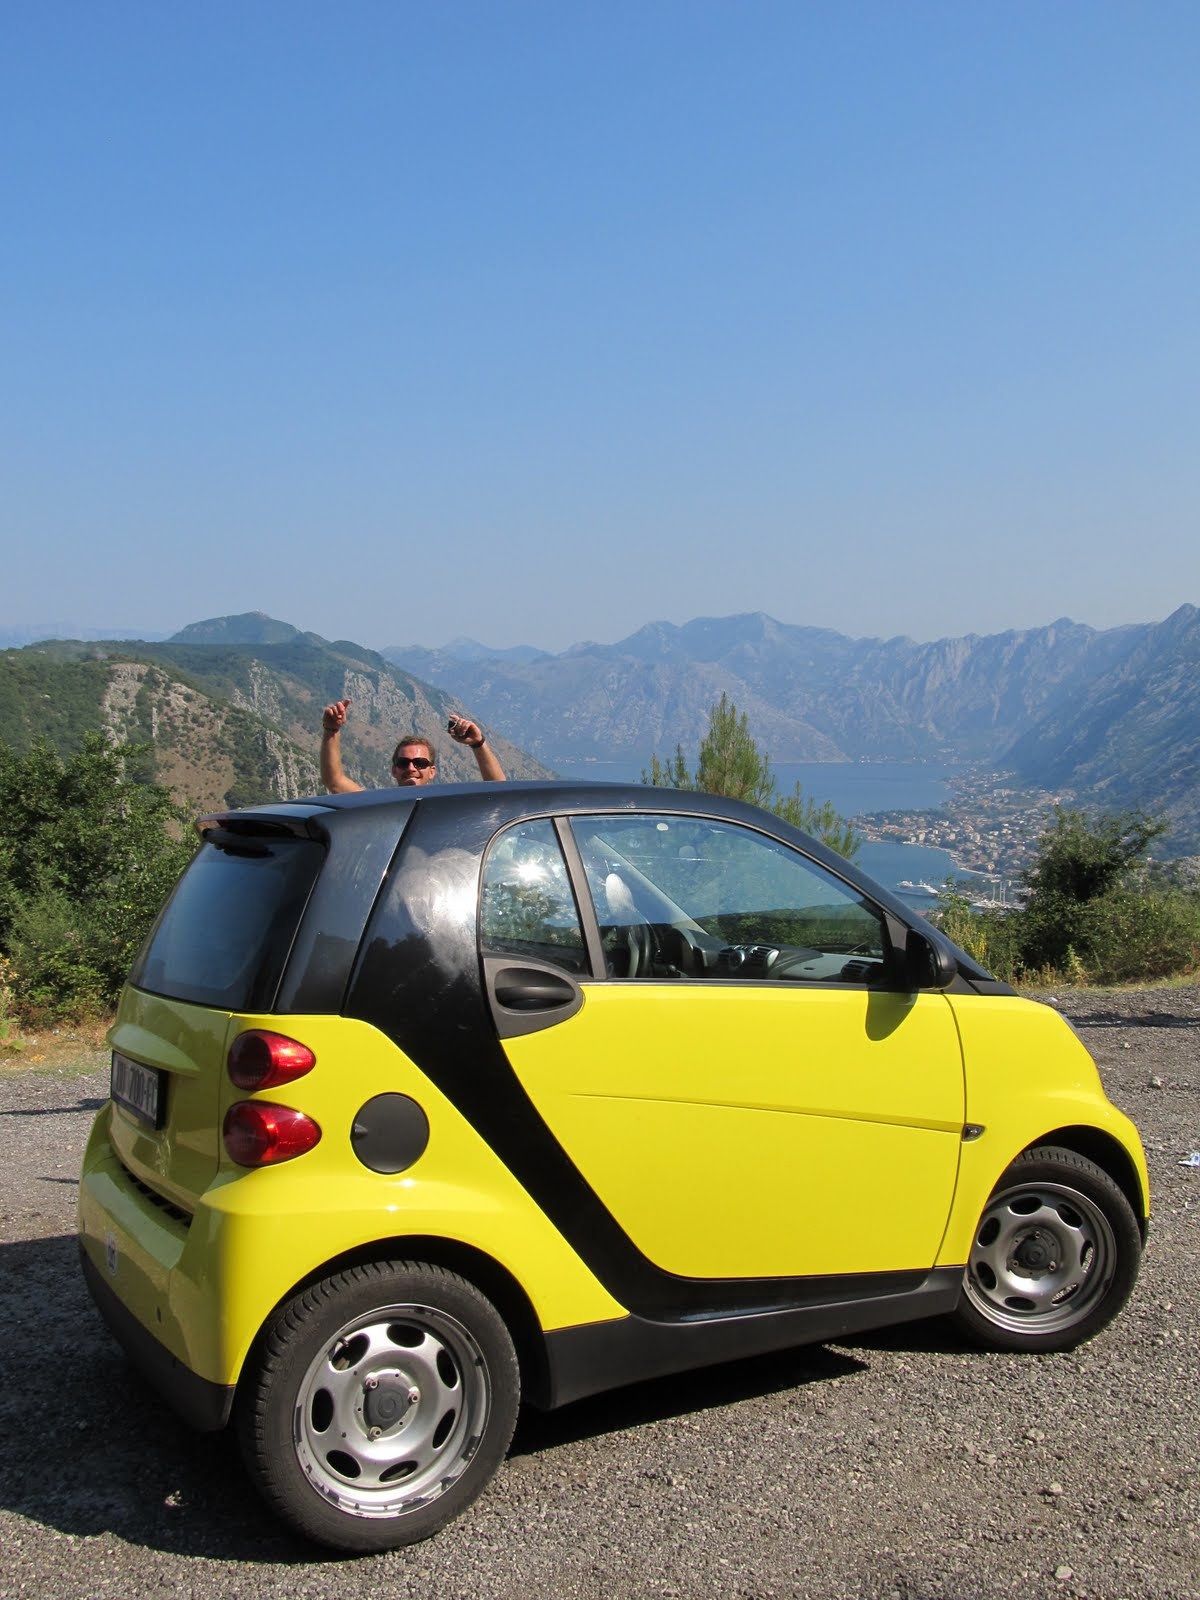 On the road: Montenegro and Albania